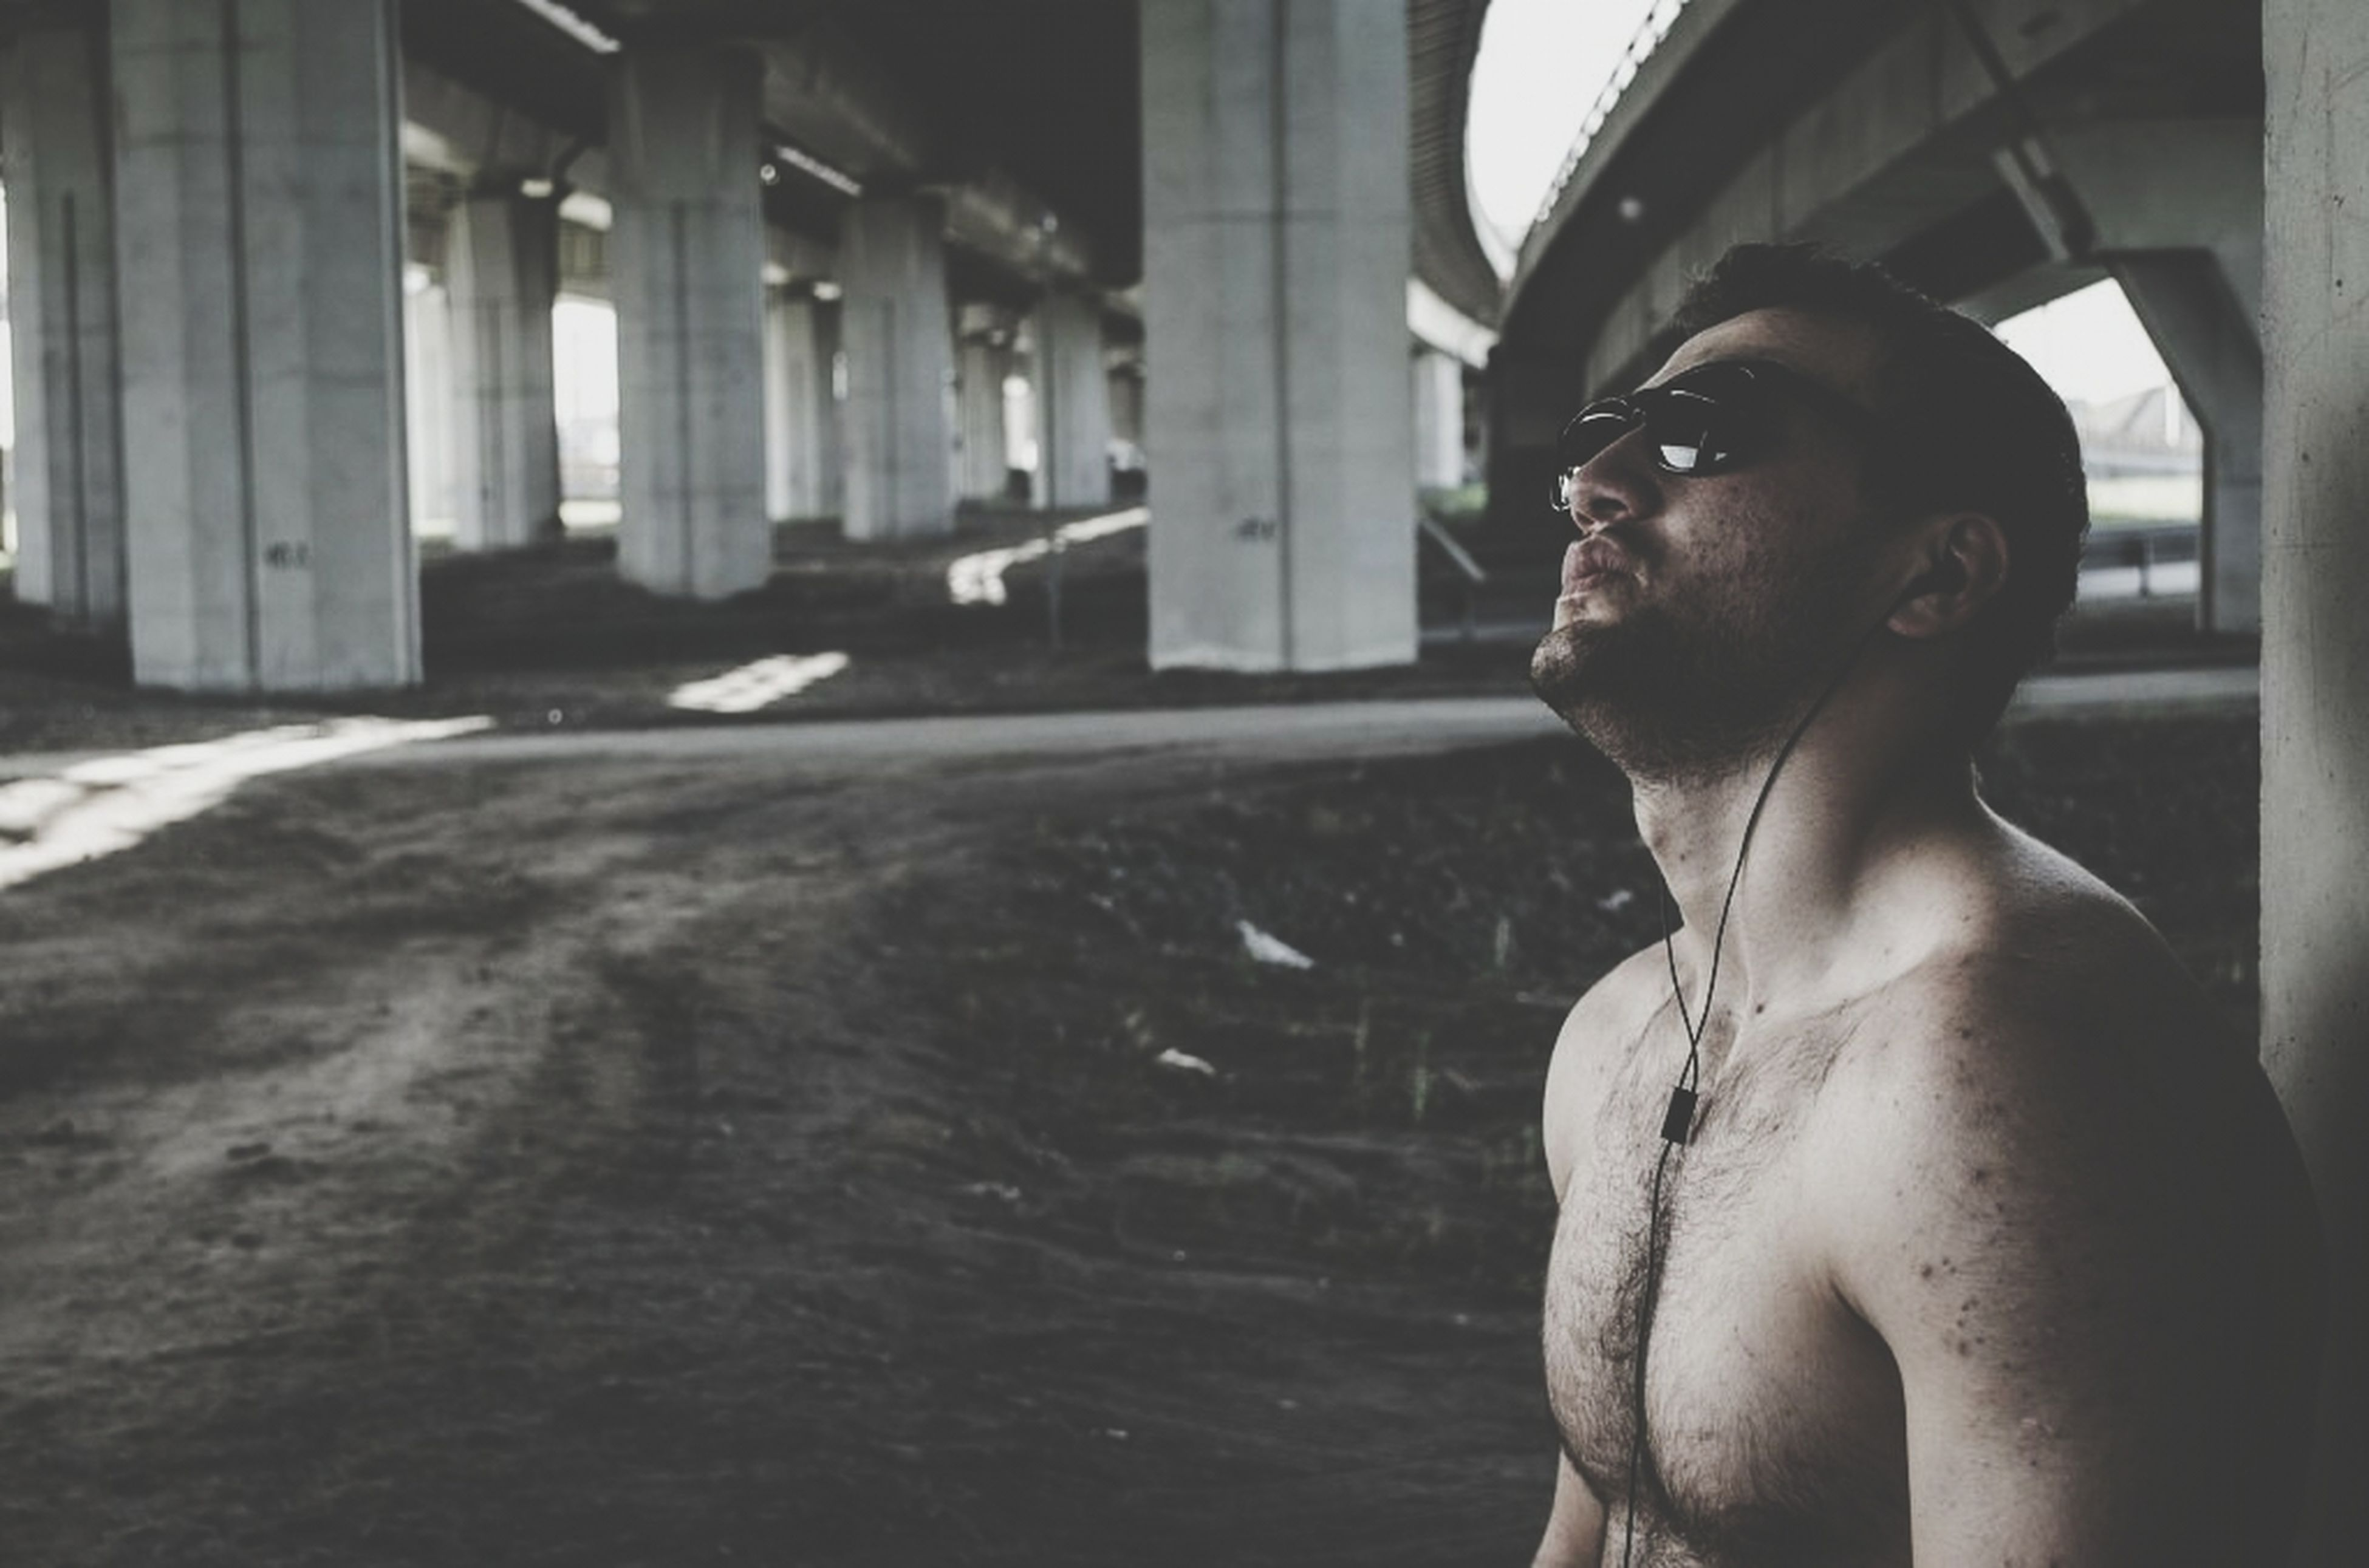 architecture, young adult, built structure, person, indoors, portrait, looking at camera, young men, headshot, lifestyles, building exterior, water, contemplation, front view, leisure activity, day, mid adult